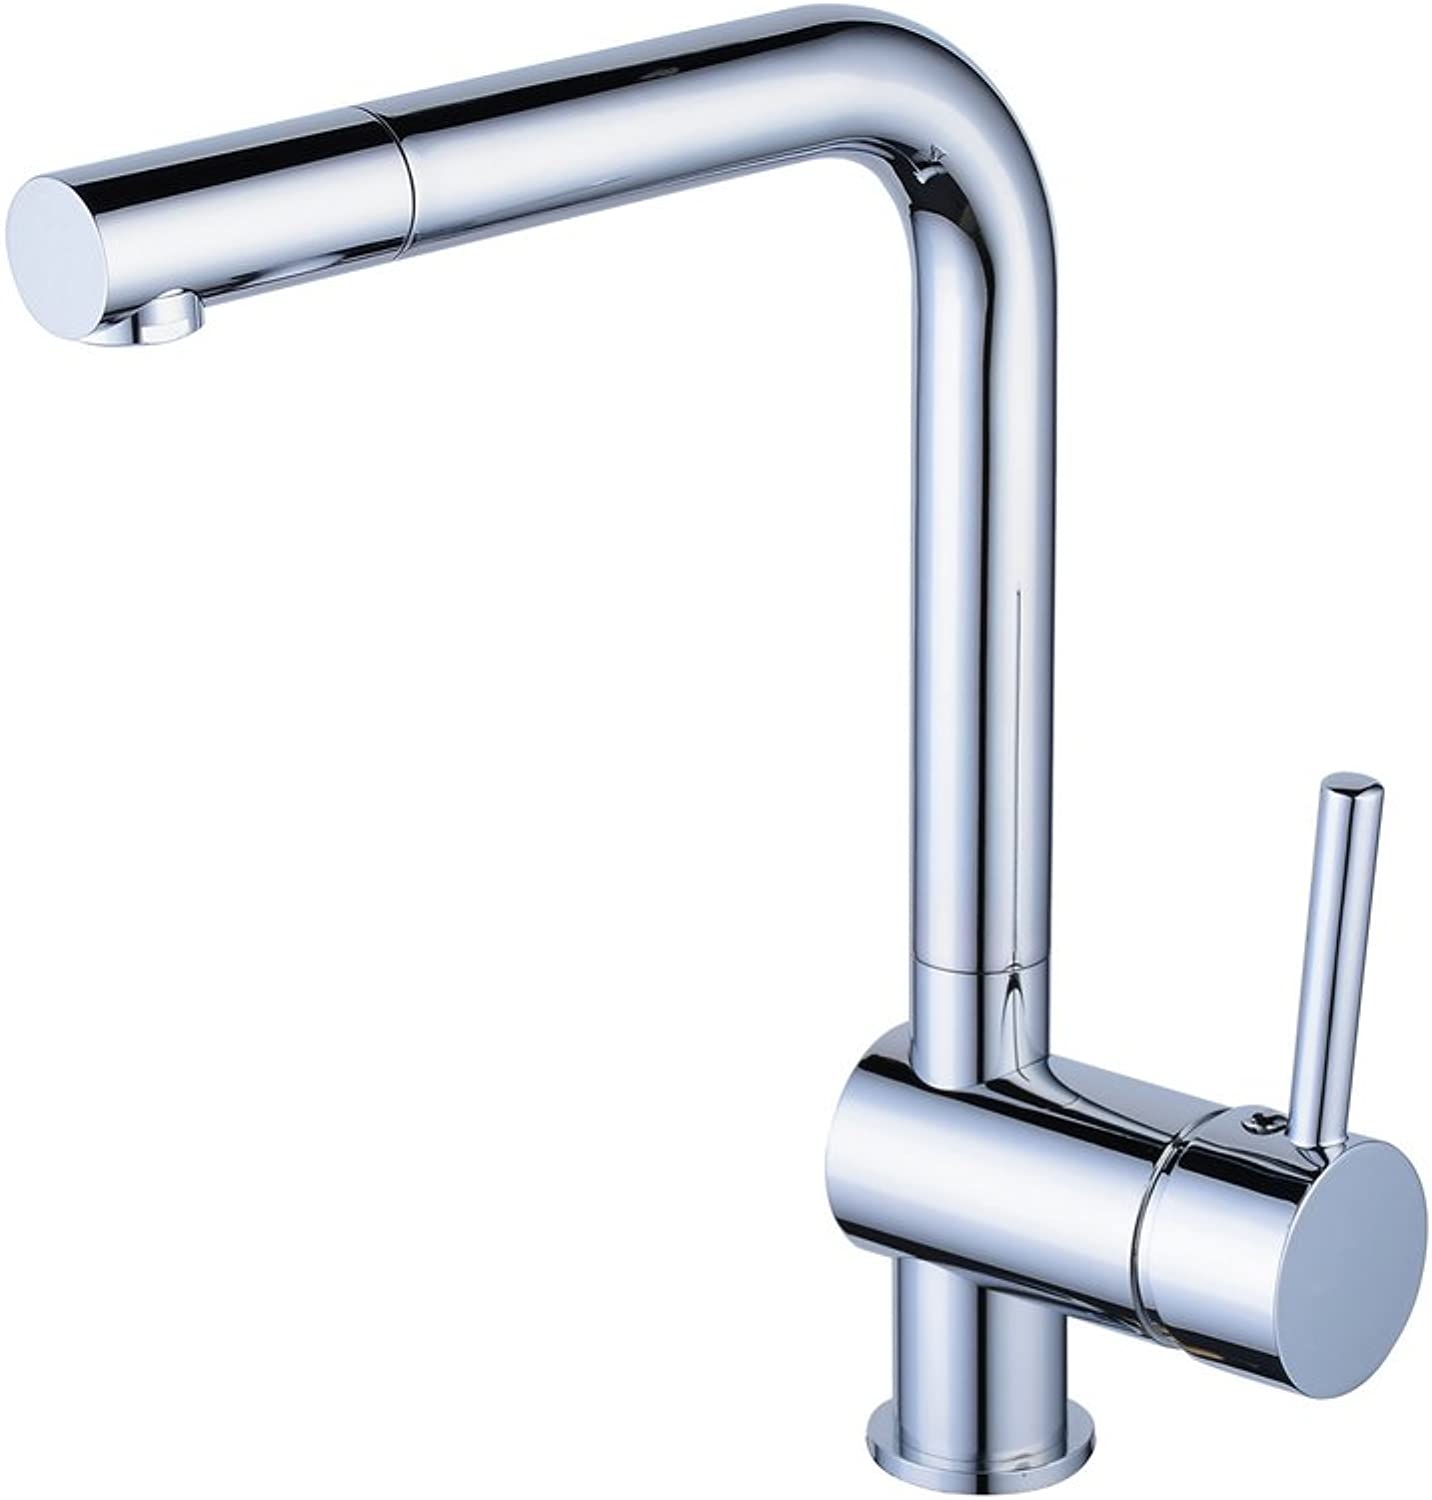 Beelee Single Lever Chrome Kitchen Sink Mixer Tap, Contracted and Contemporary Style High Arch Square Swivel Spout Lead Free Solid Brass Body